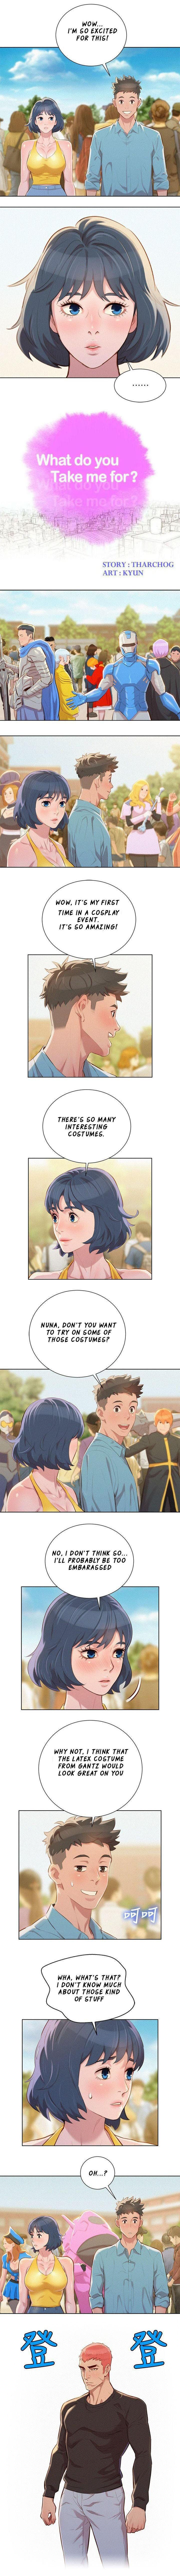 What do you Take me For? Ch.50/? 383